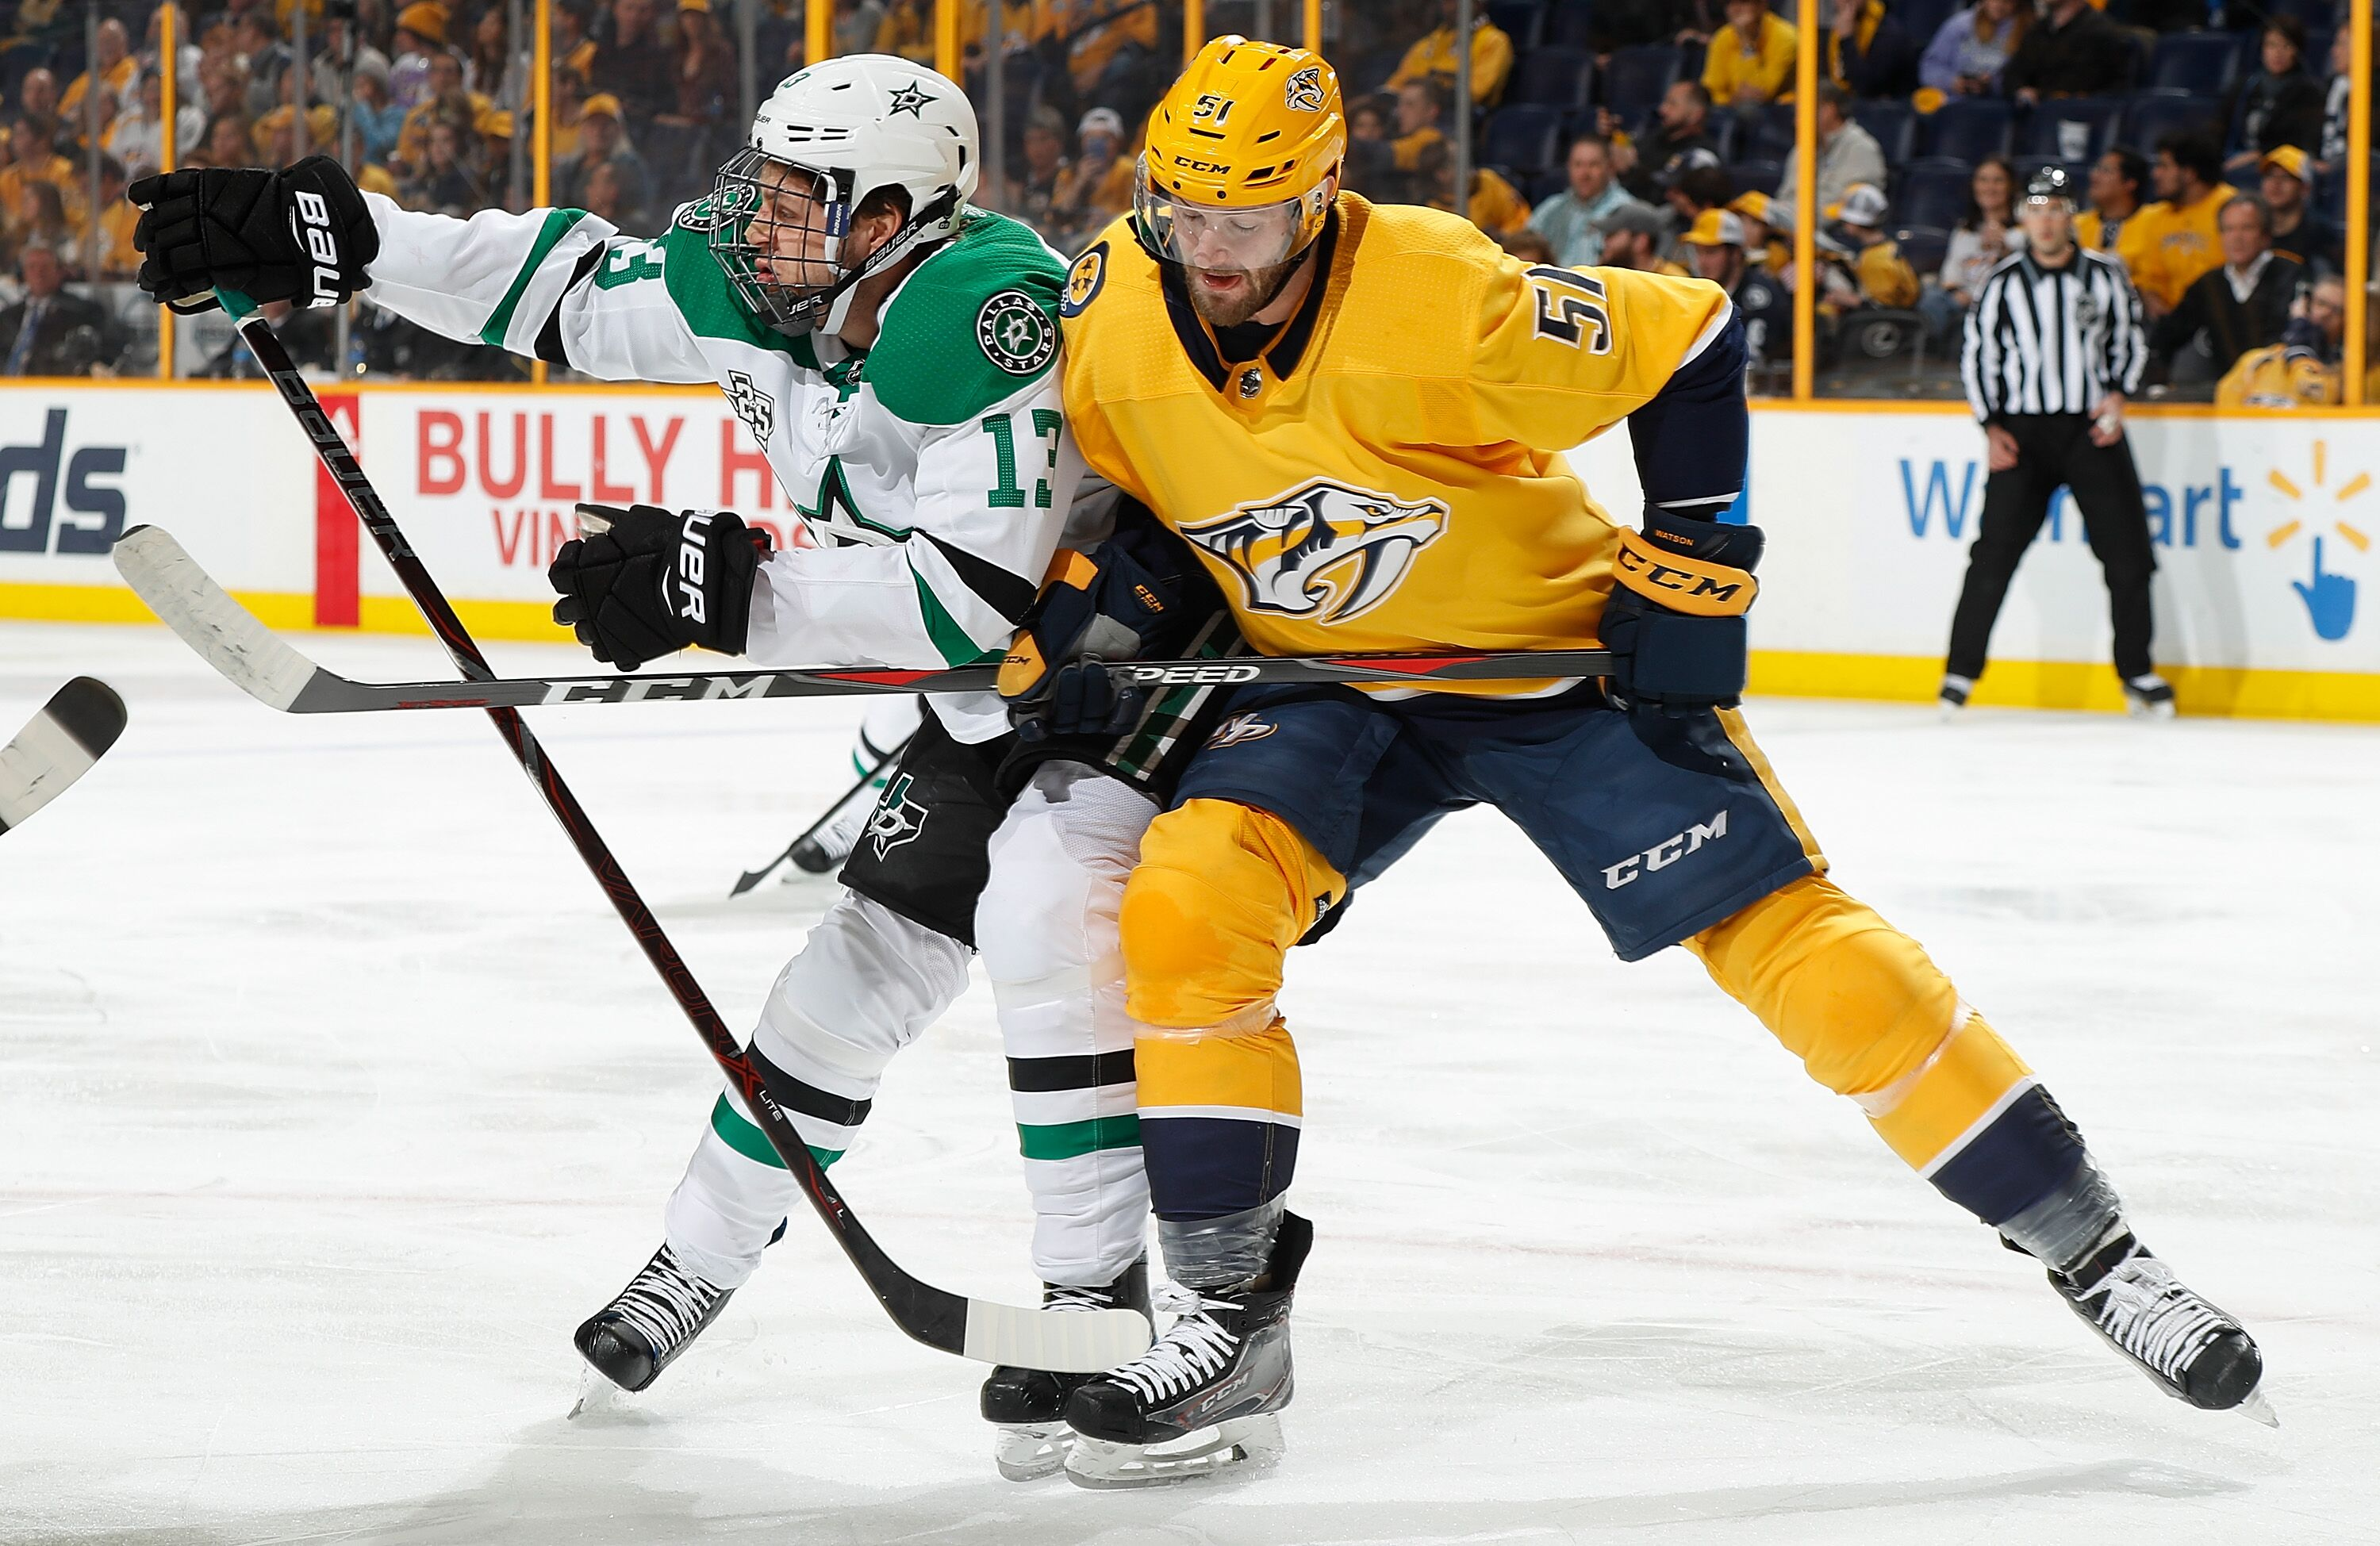 Nashville Predators: Austin Watson arrested for domestic assault